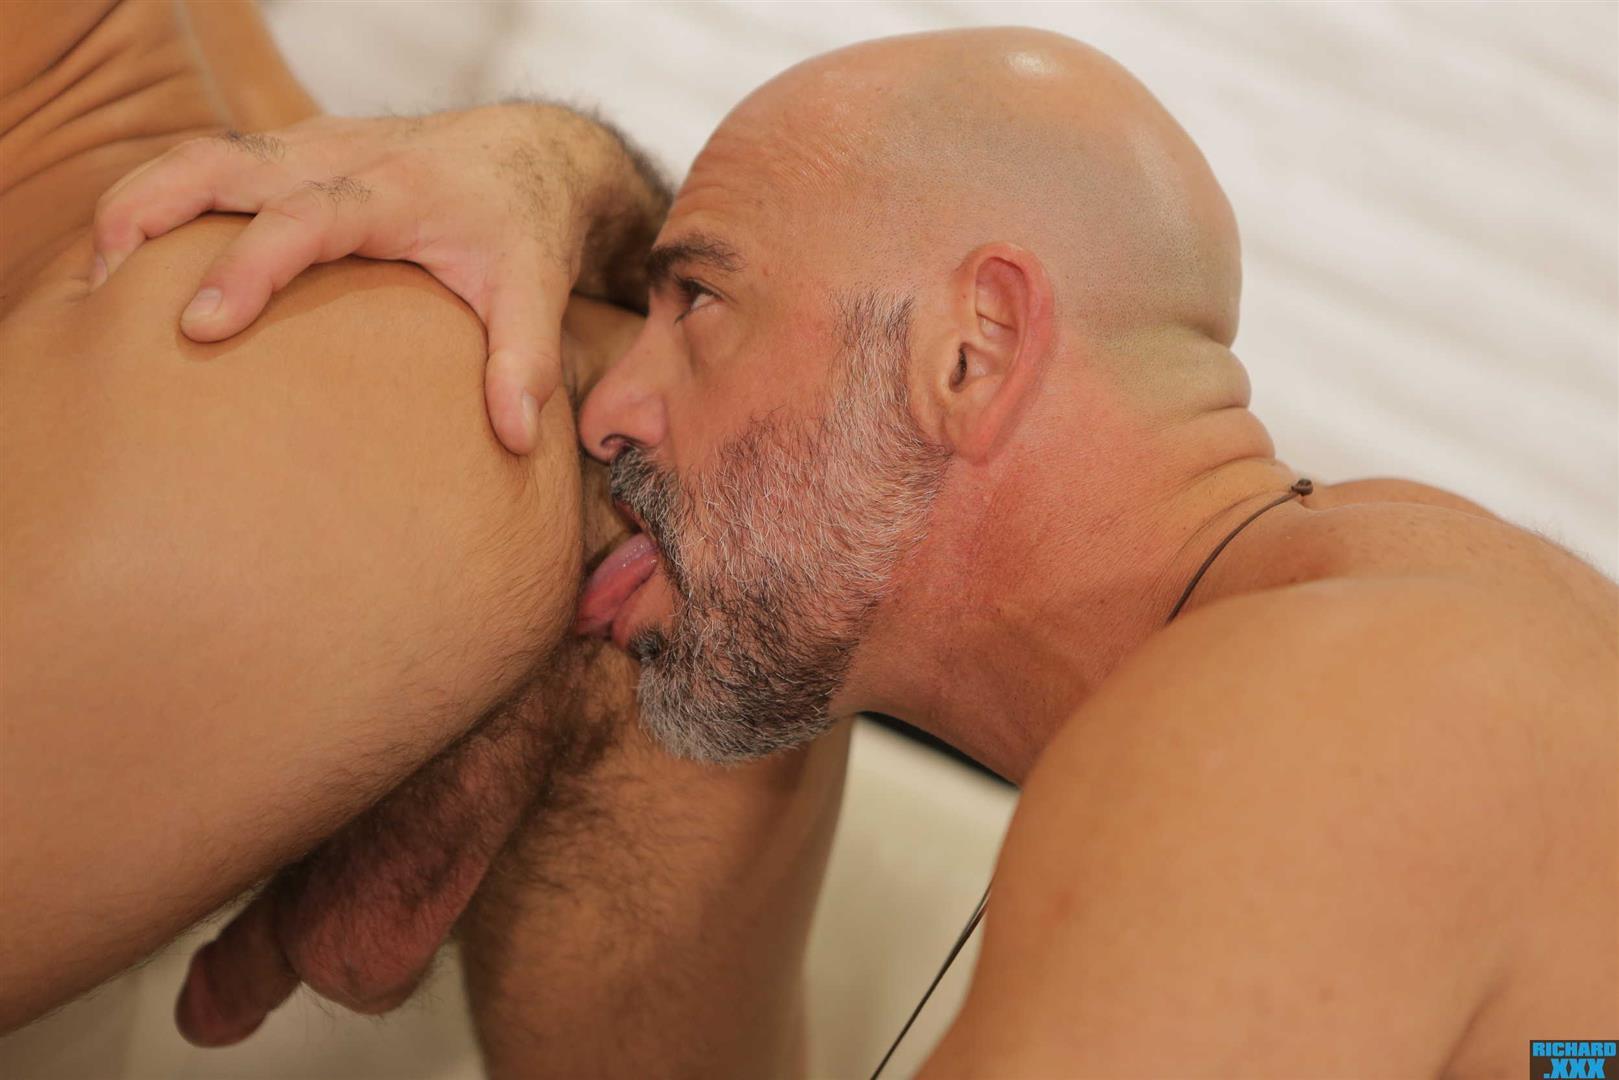 Richard-XXX-Adam-Russo-and-Casey-Everett-Muscle-Daddy-Thick-Dick-Bareback-Video-14 Hairy Muscle Daddy Adam Russo Bareback Fucking Casey Everett